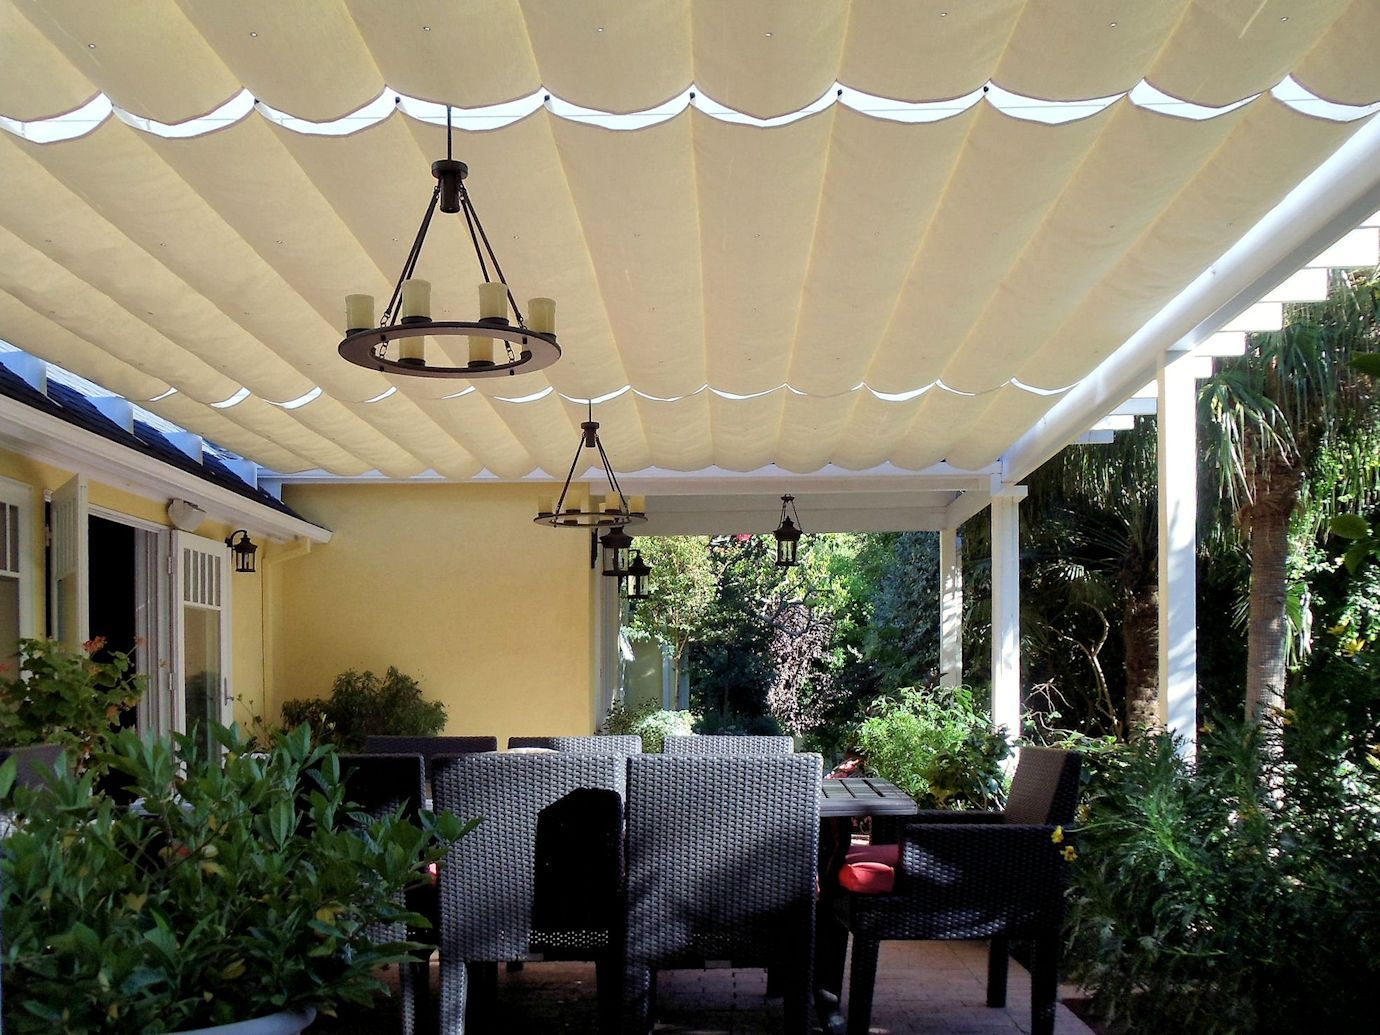 Slide Wire Cable Awnings Canopy Outdoor Canopy Bedroom Ikea Canopy